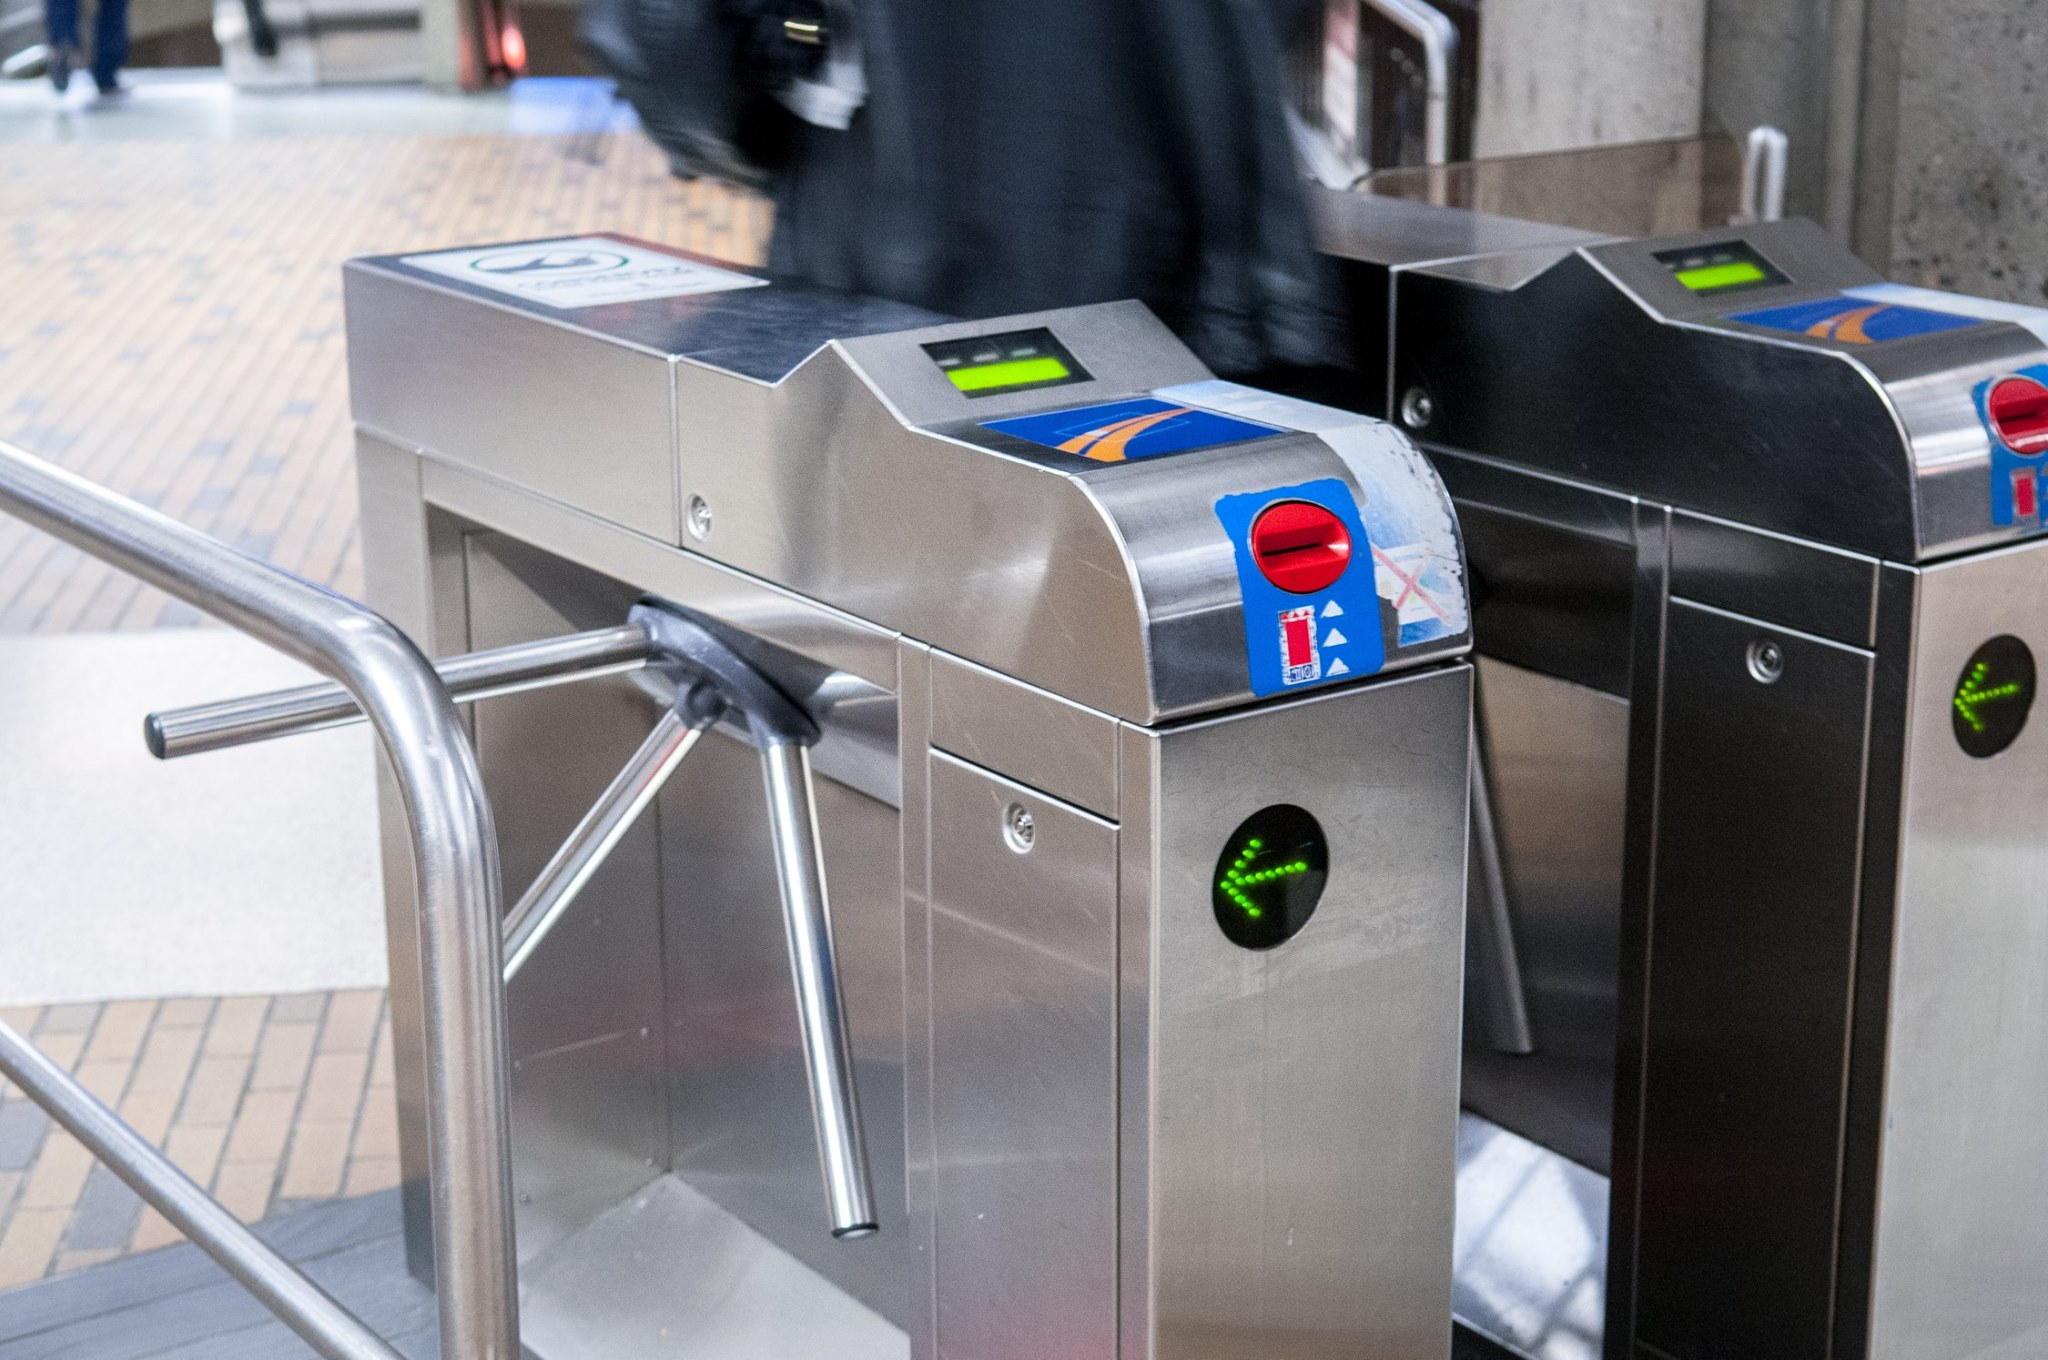 Montréal turnstiles, with a card reader on the top, and an ATM-like card insertion slot on the front side.